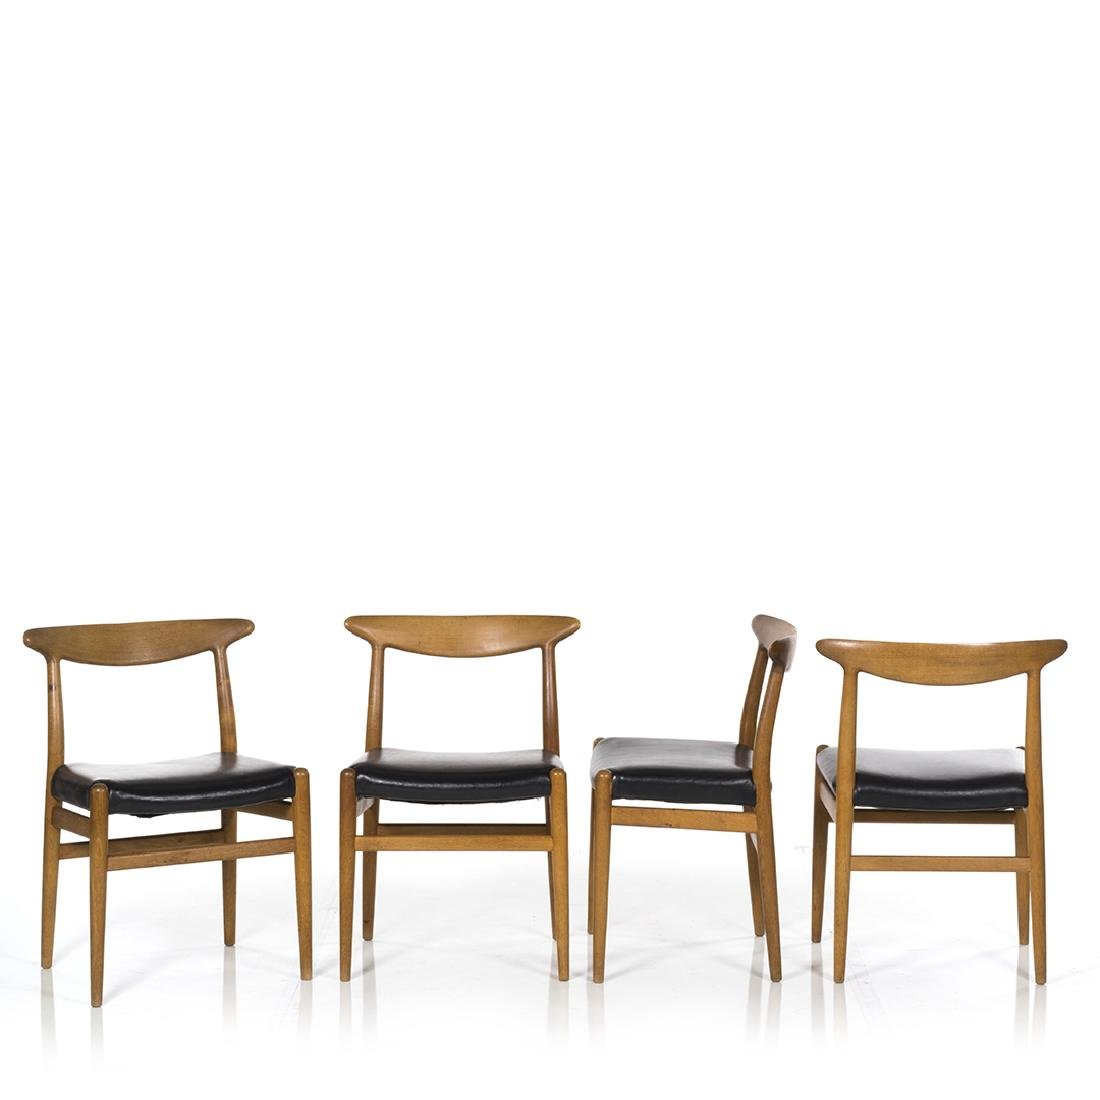 Hans Wegner Dining Chairs (4) - 2